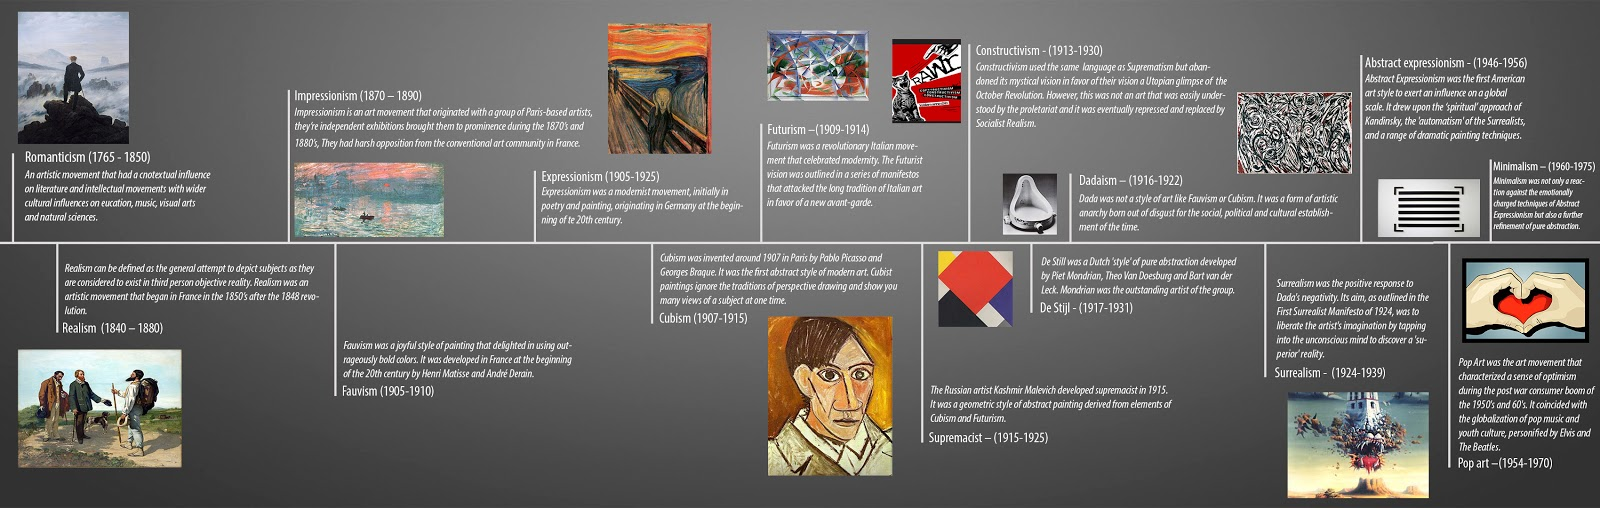 Timeline and research unit 5 influences in art design the design of the timeline was too be simple and informative but also it had too look good and i think i ticked all of these boxes altavistaventures Gallery